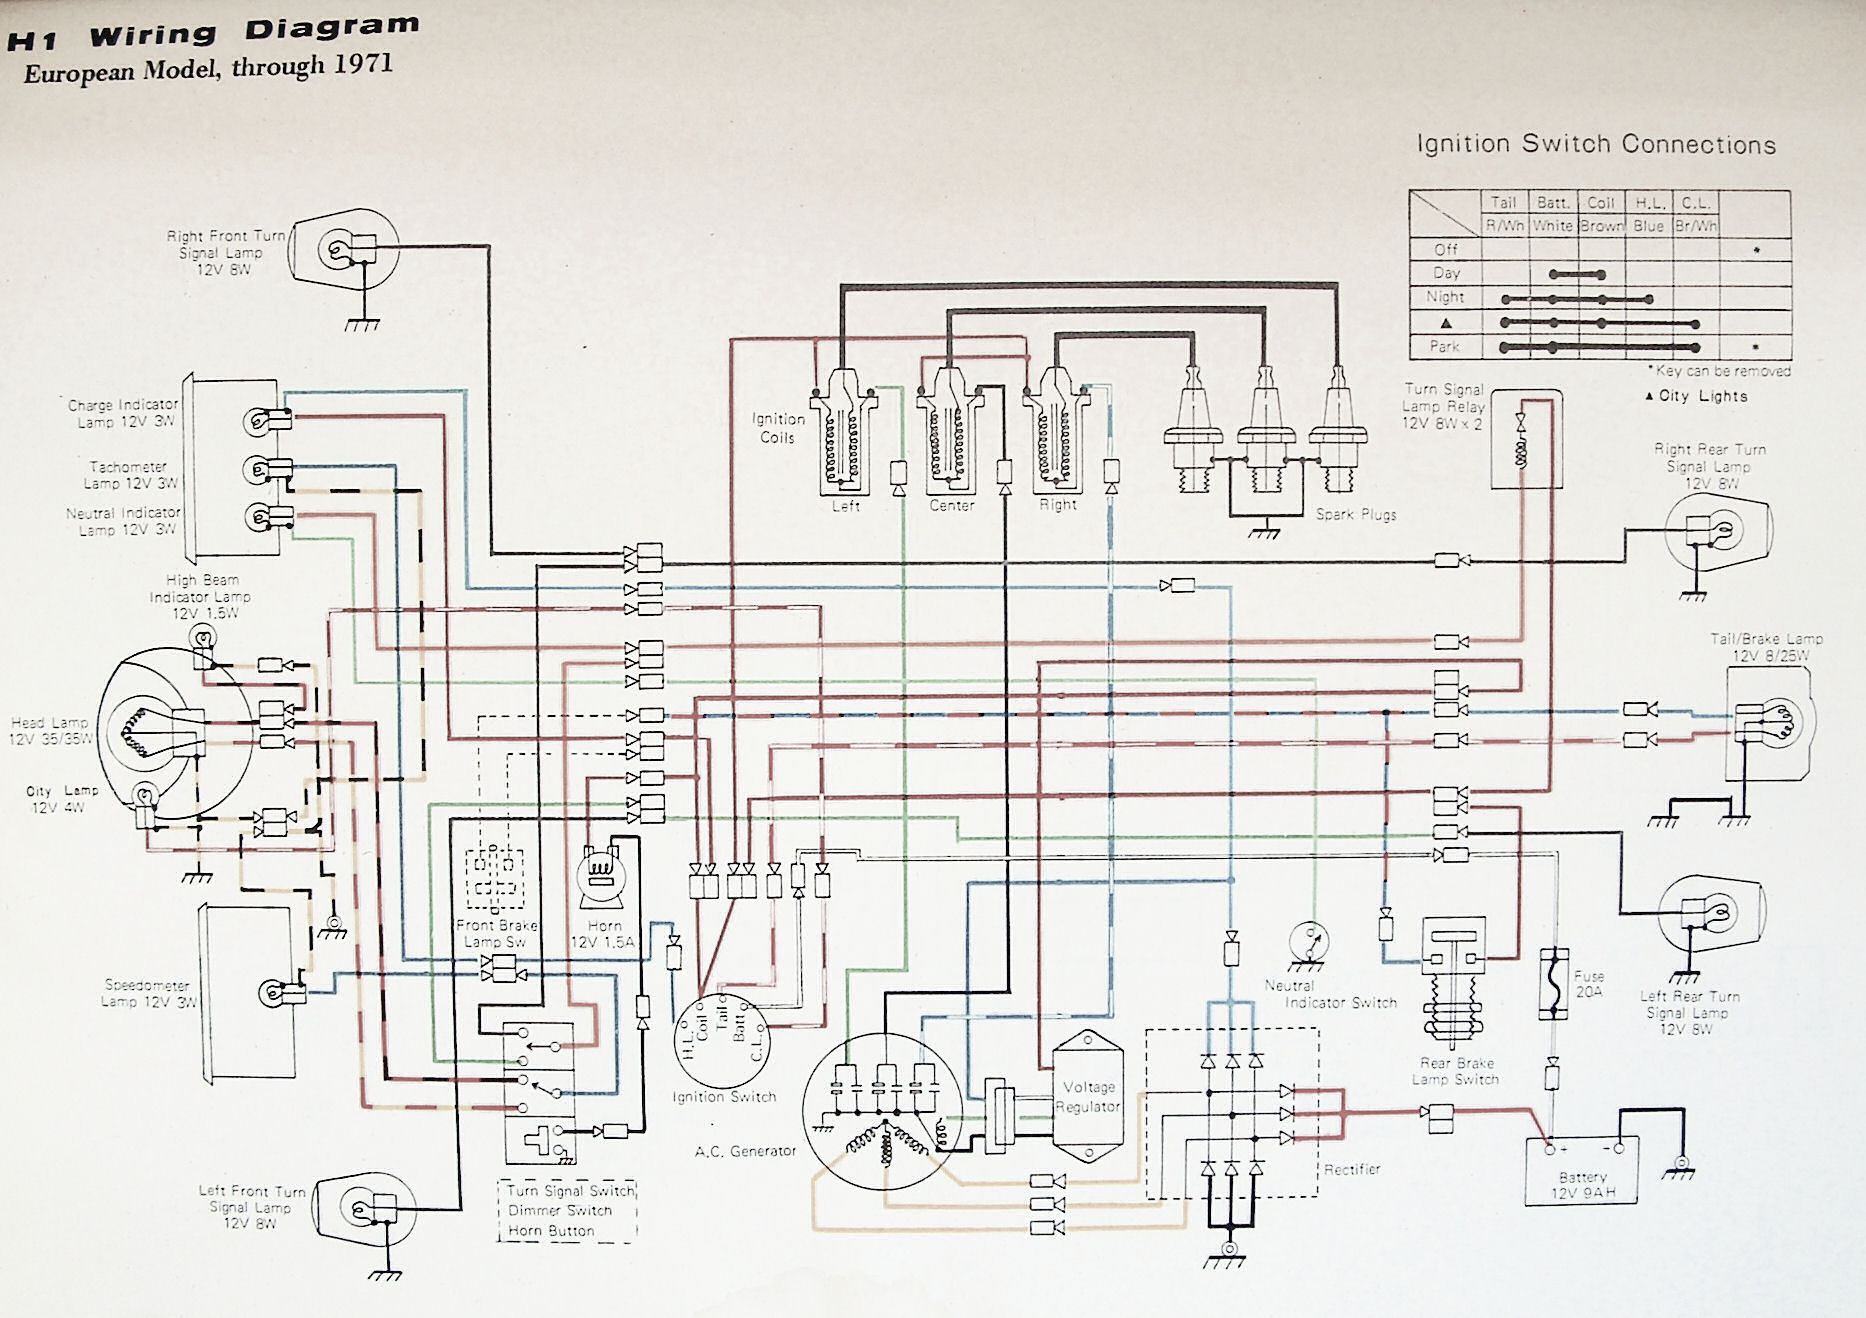 kawasaki h1 wiring diagram k z 650 h1 wiring diagram wiring diagrams #7